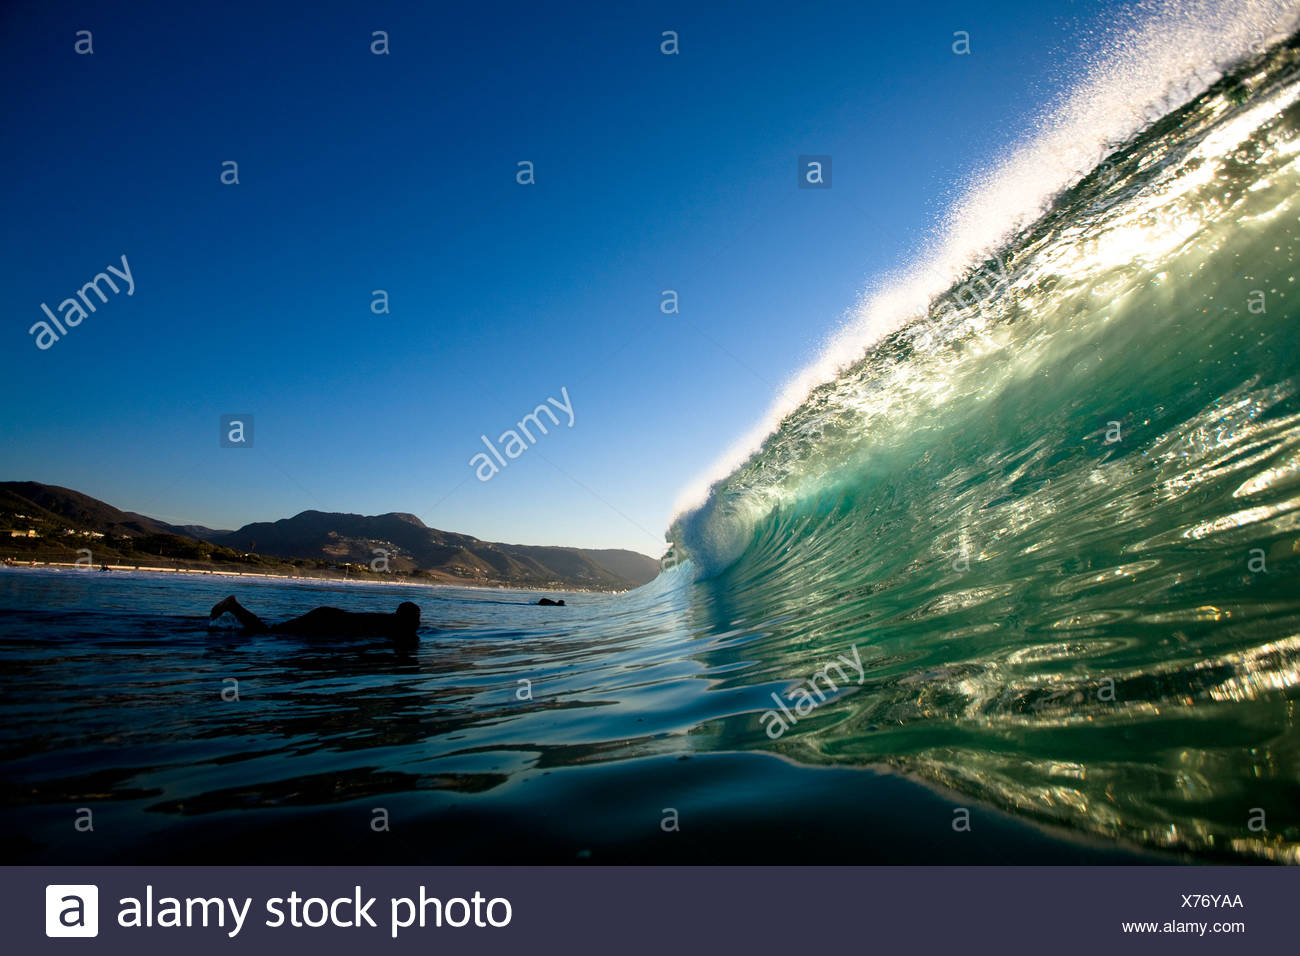 A male surfer gets ready to duck dive a backlit wave while surfing Zuma Beach in Malibu, California. - Stock Image